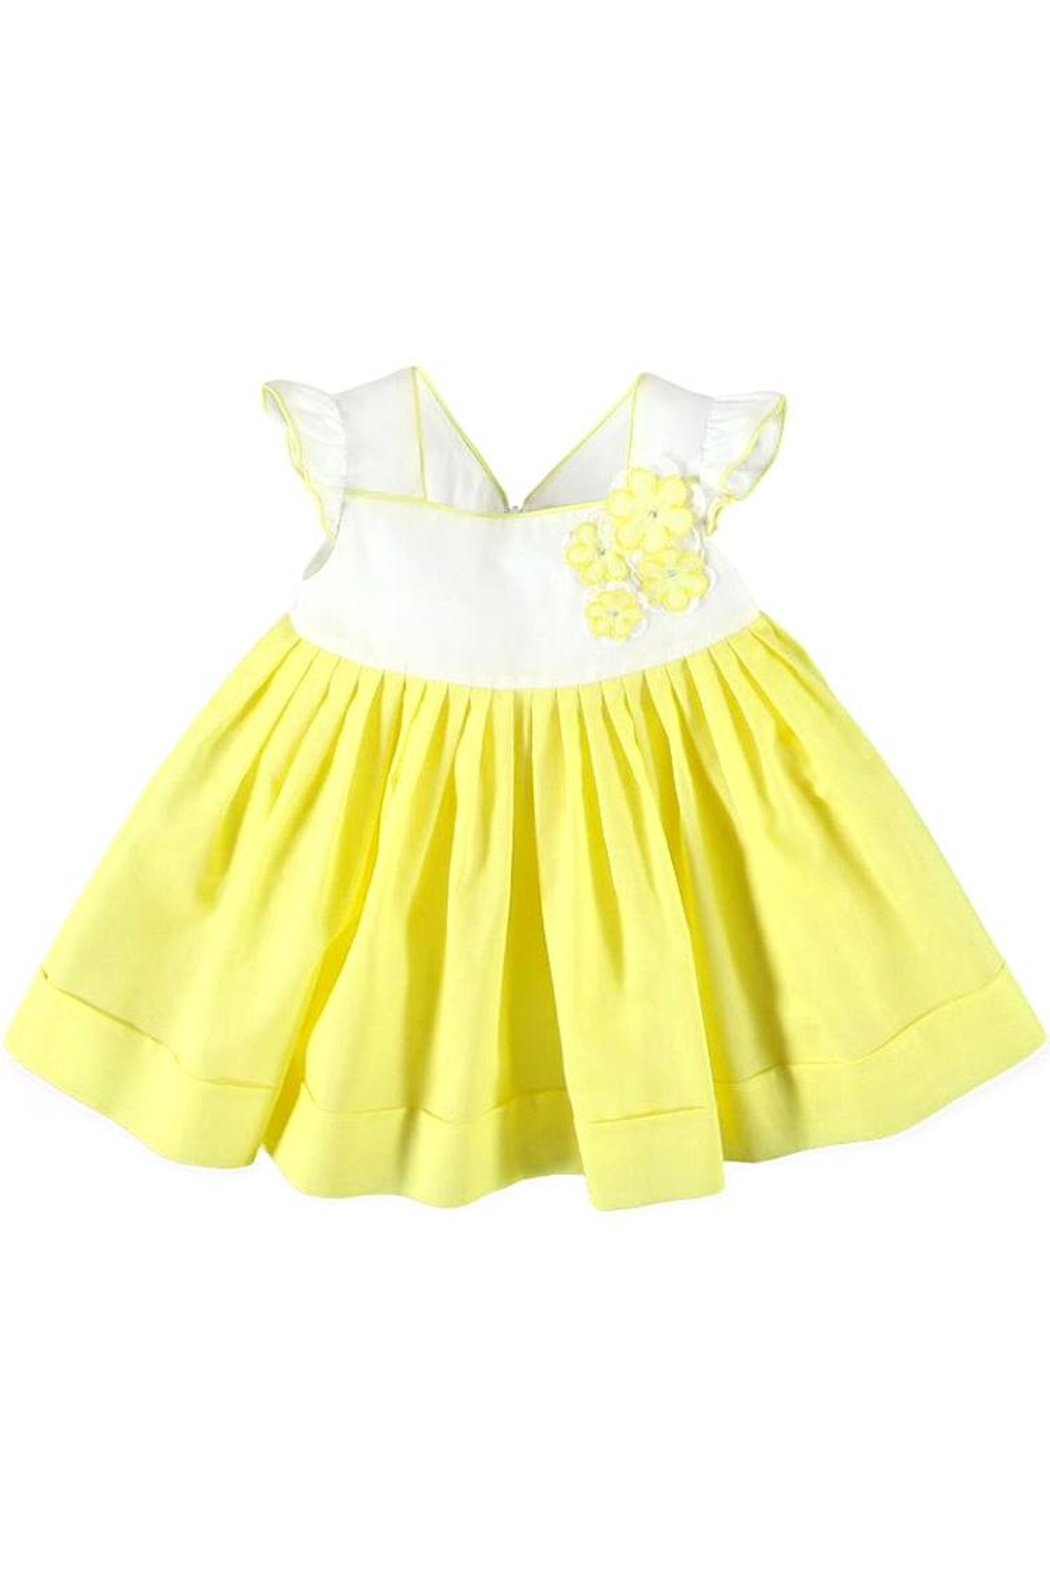 Mayoral Lemon Voile Dress - Main Image